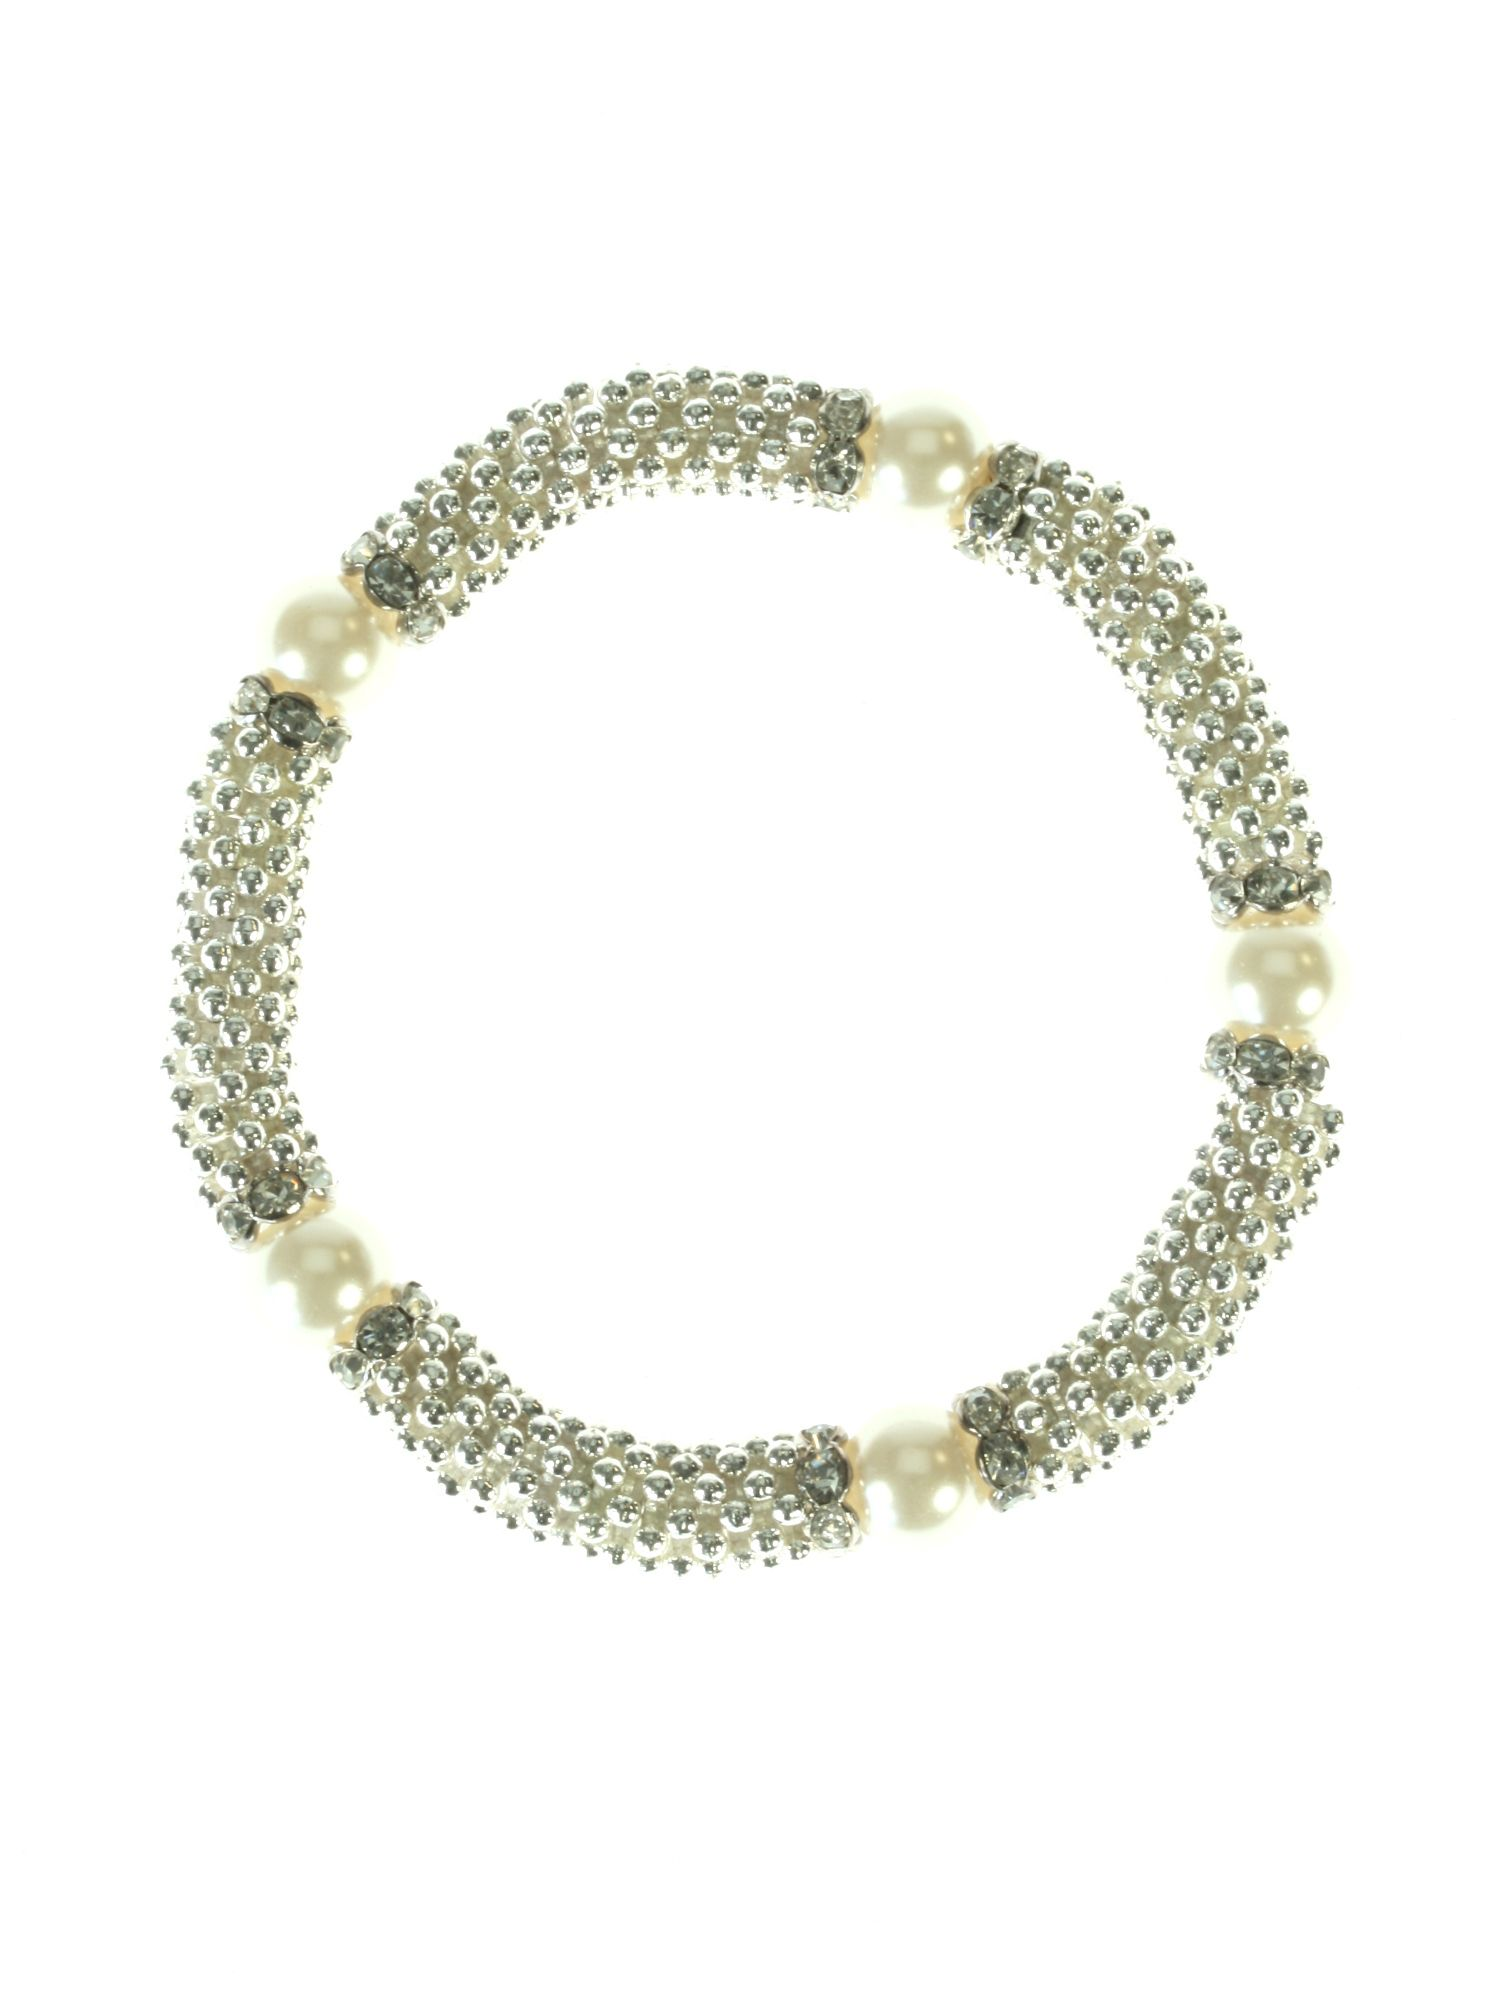 Faux pearls and crystals stretch bracelet